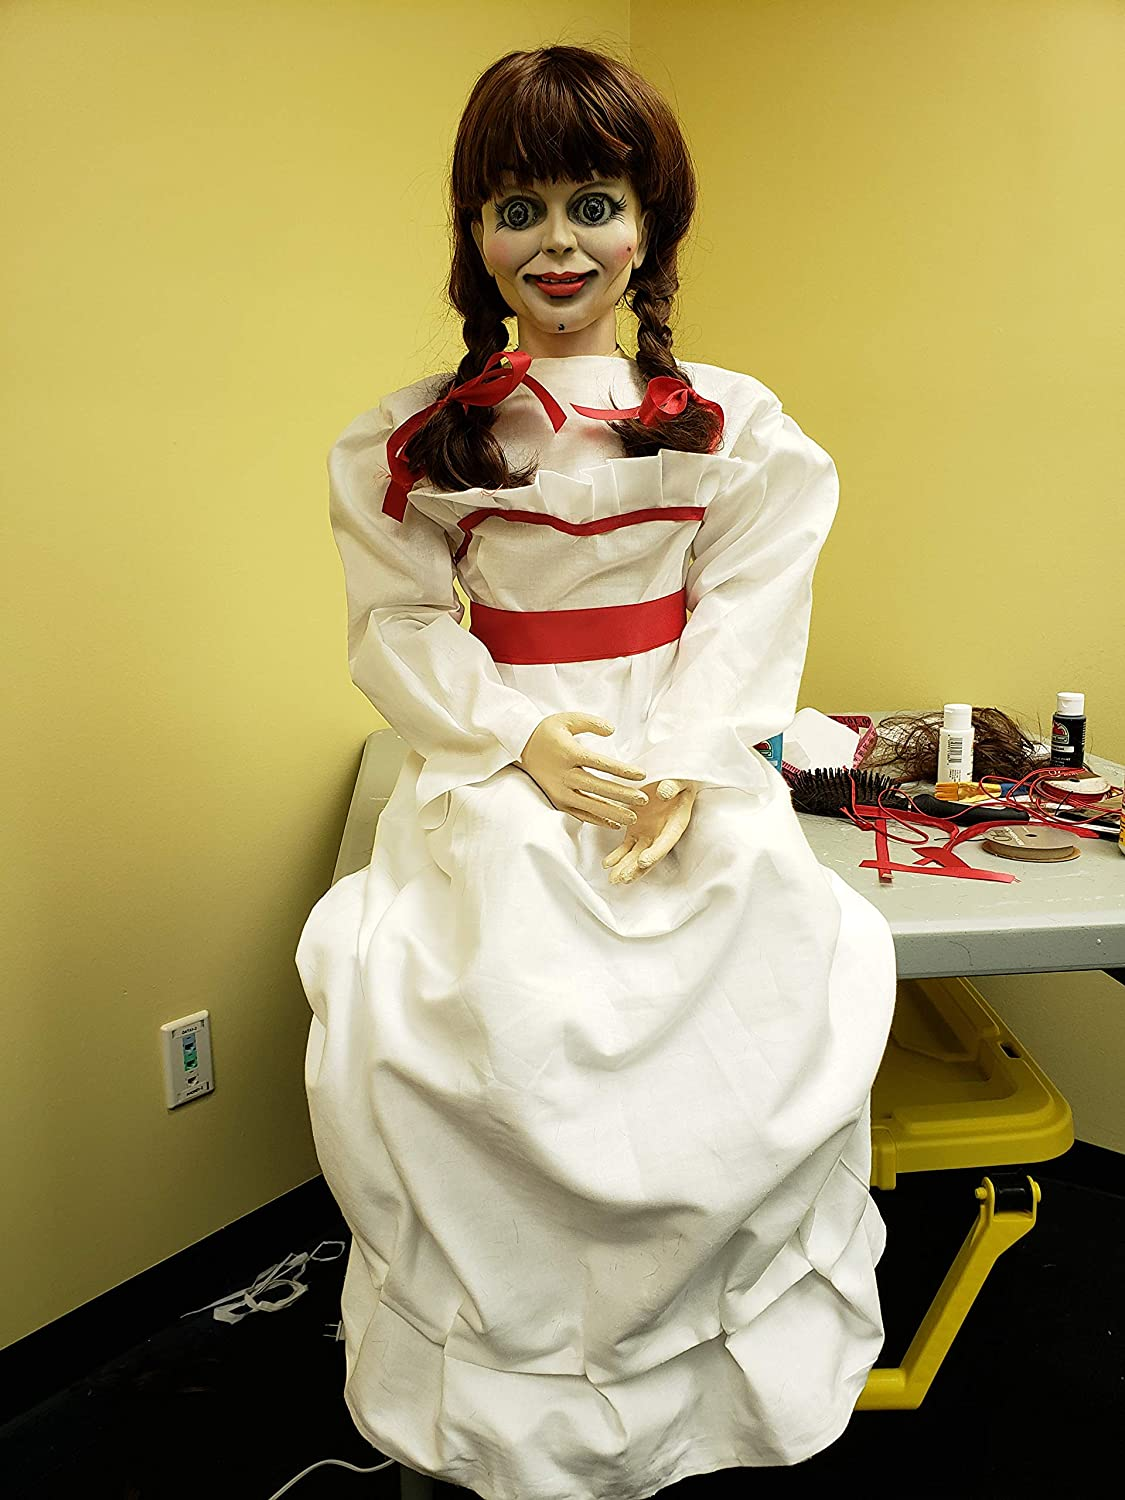 Amazon com: ANNABELLE DOLL 1:1 Full Scale Life Size The